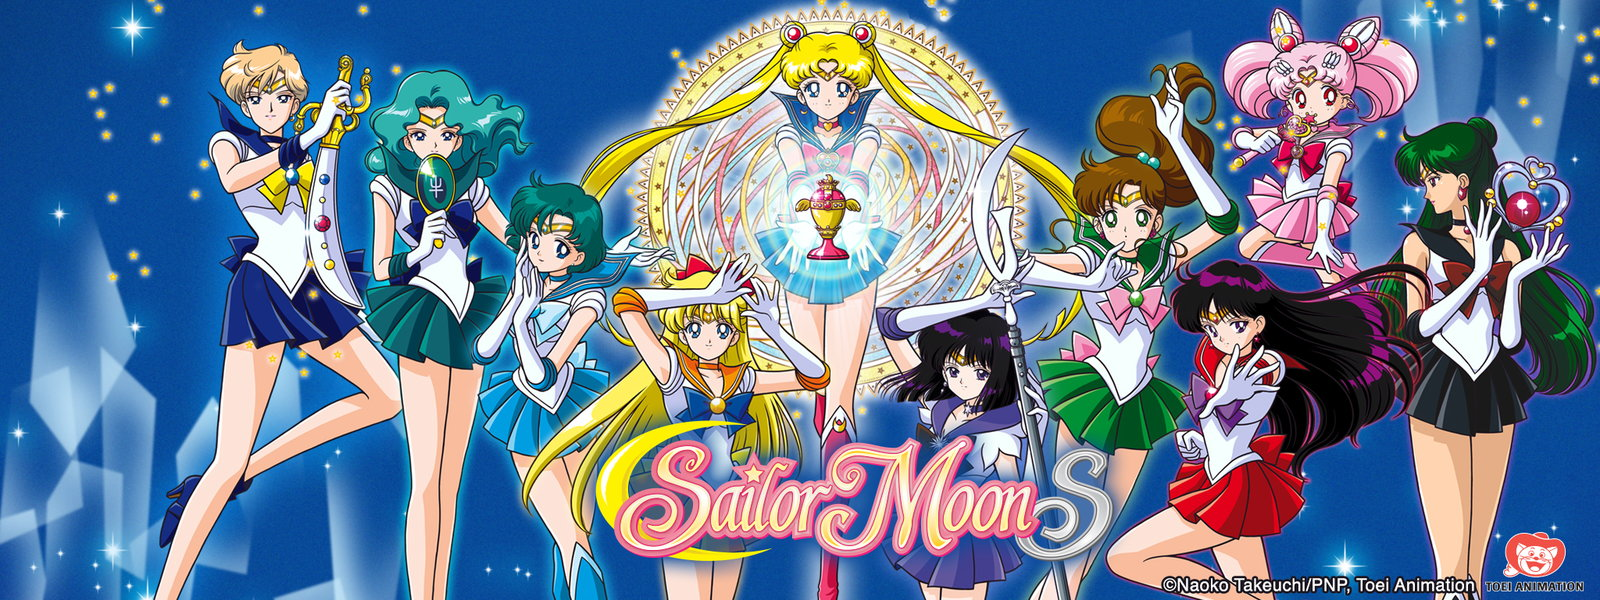 Bildresultat för sailor moon